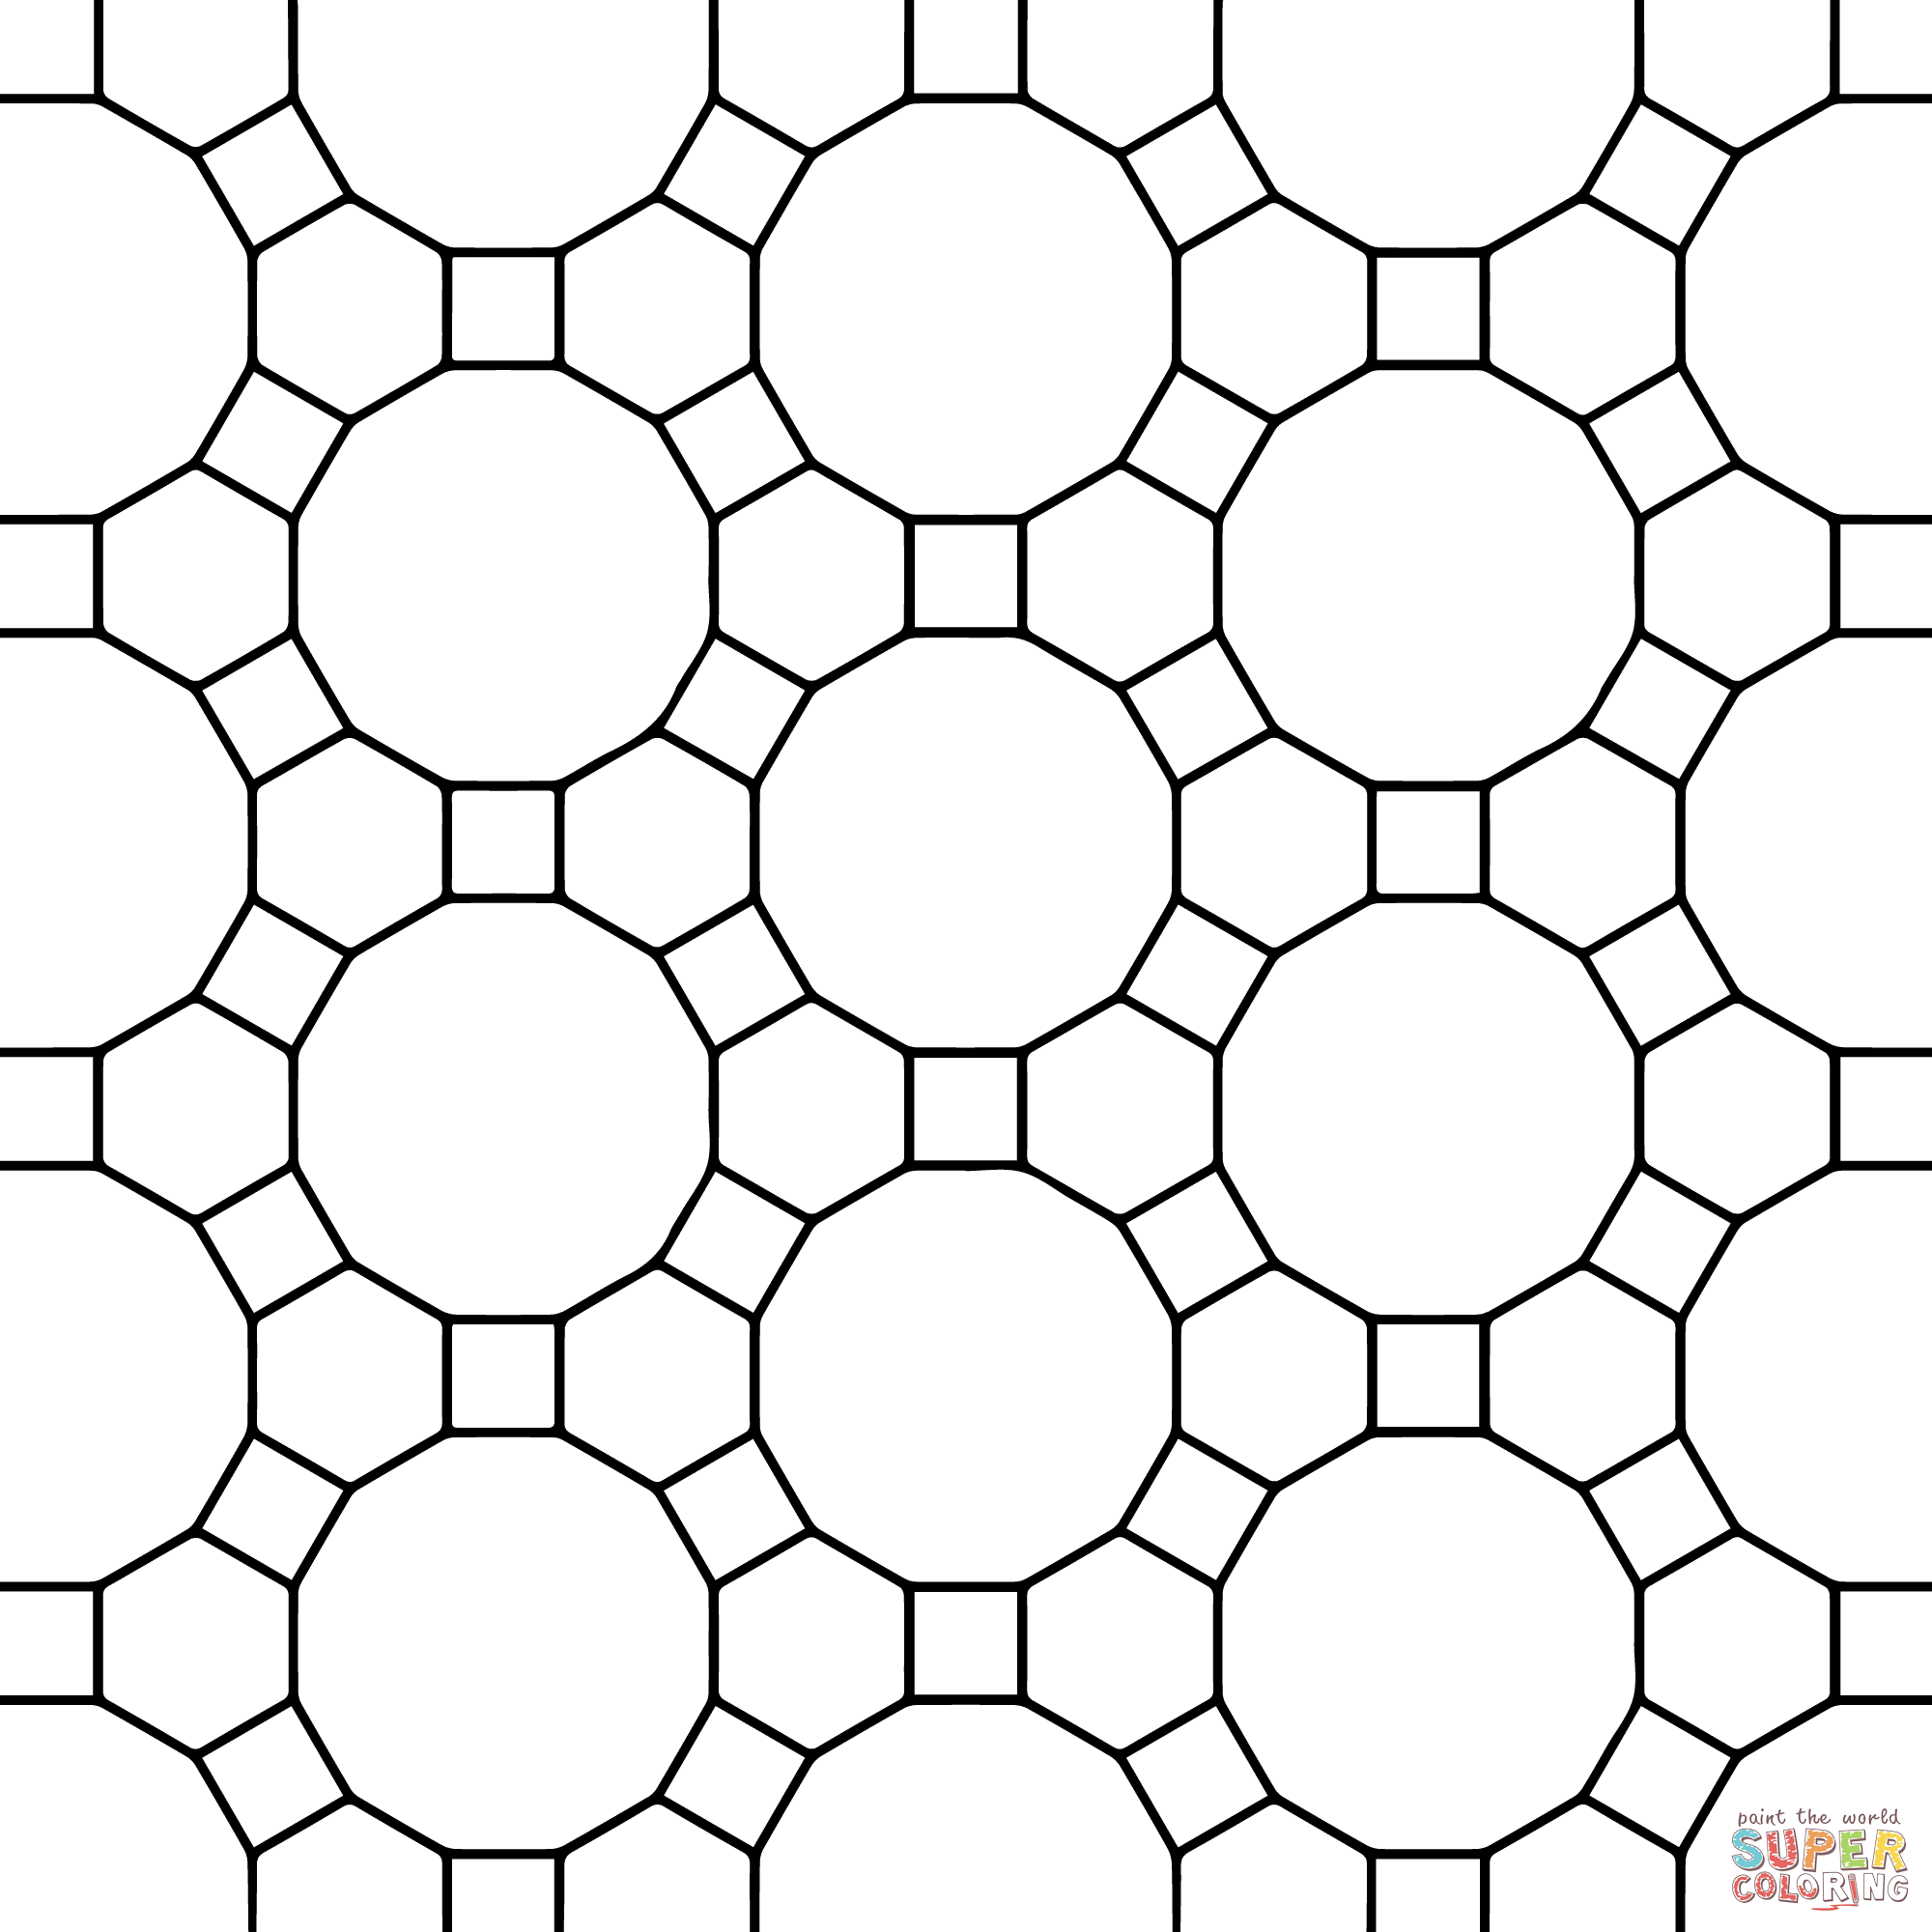 Tessellation With Octagon And Square Coloring Pages besides Tessellation Paper together with Stepping Out By Roy Lichtenstein Coloring Page likewise Hexagon together with Hailee Tessallation Heart Pixel. on printable tessellations